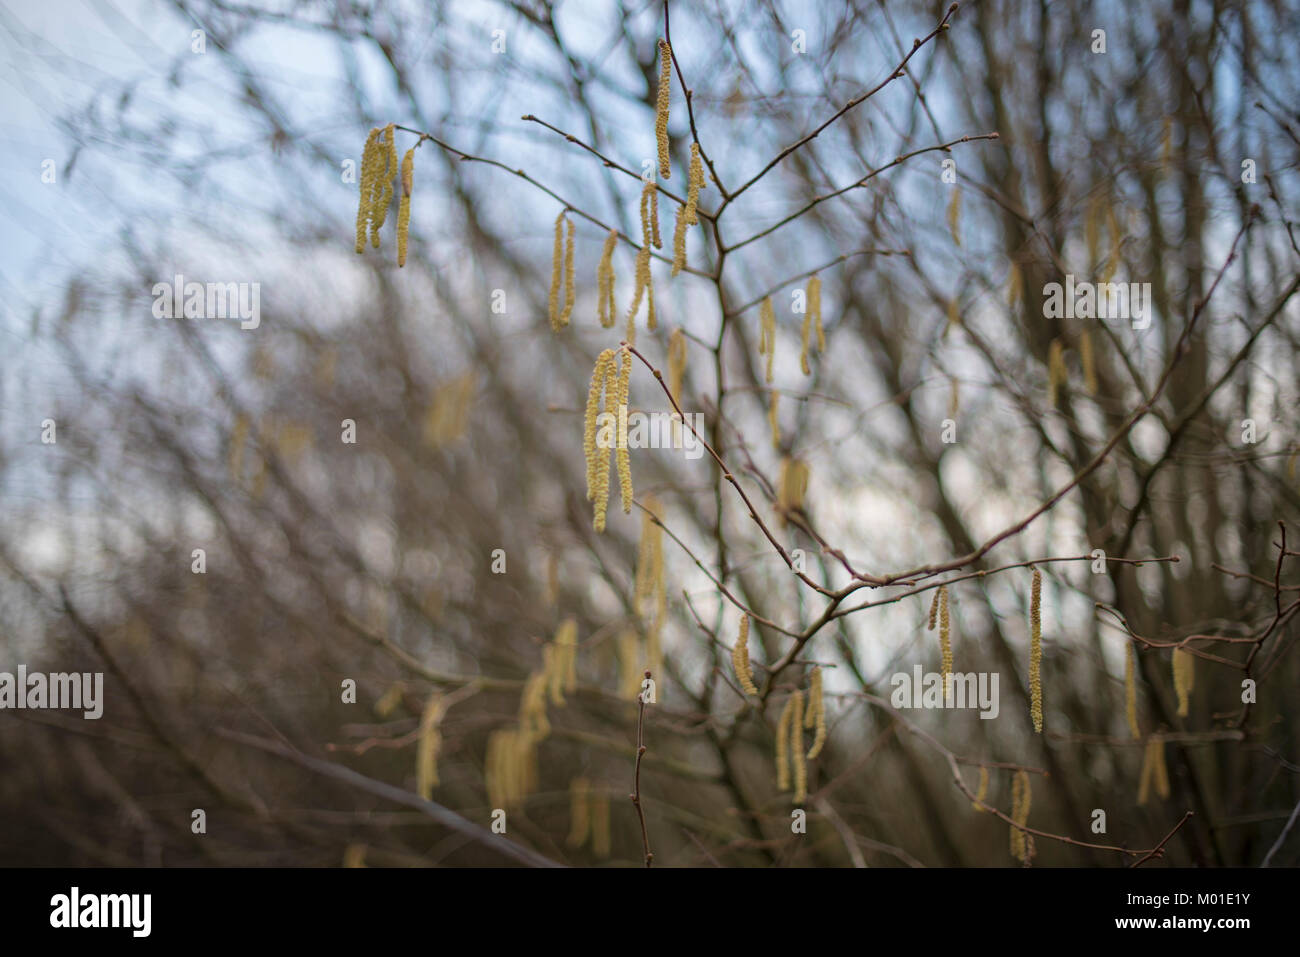 Hazel branches with catkins in the winter - Stock Image